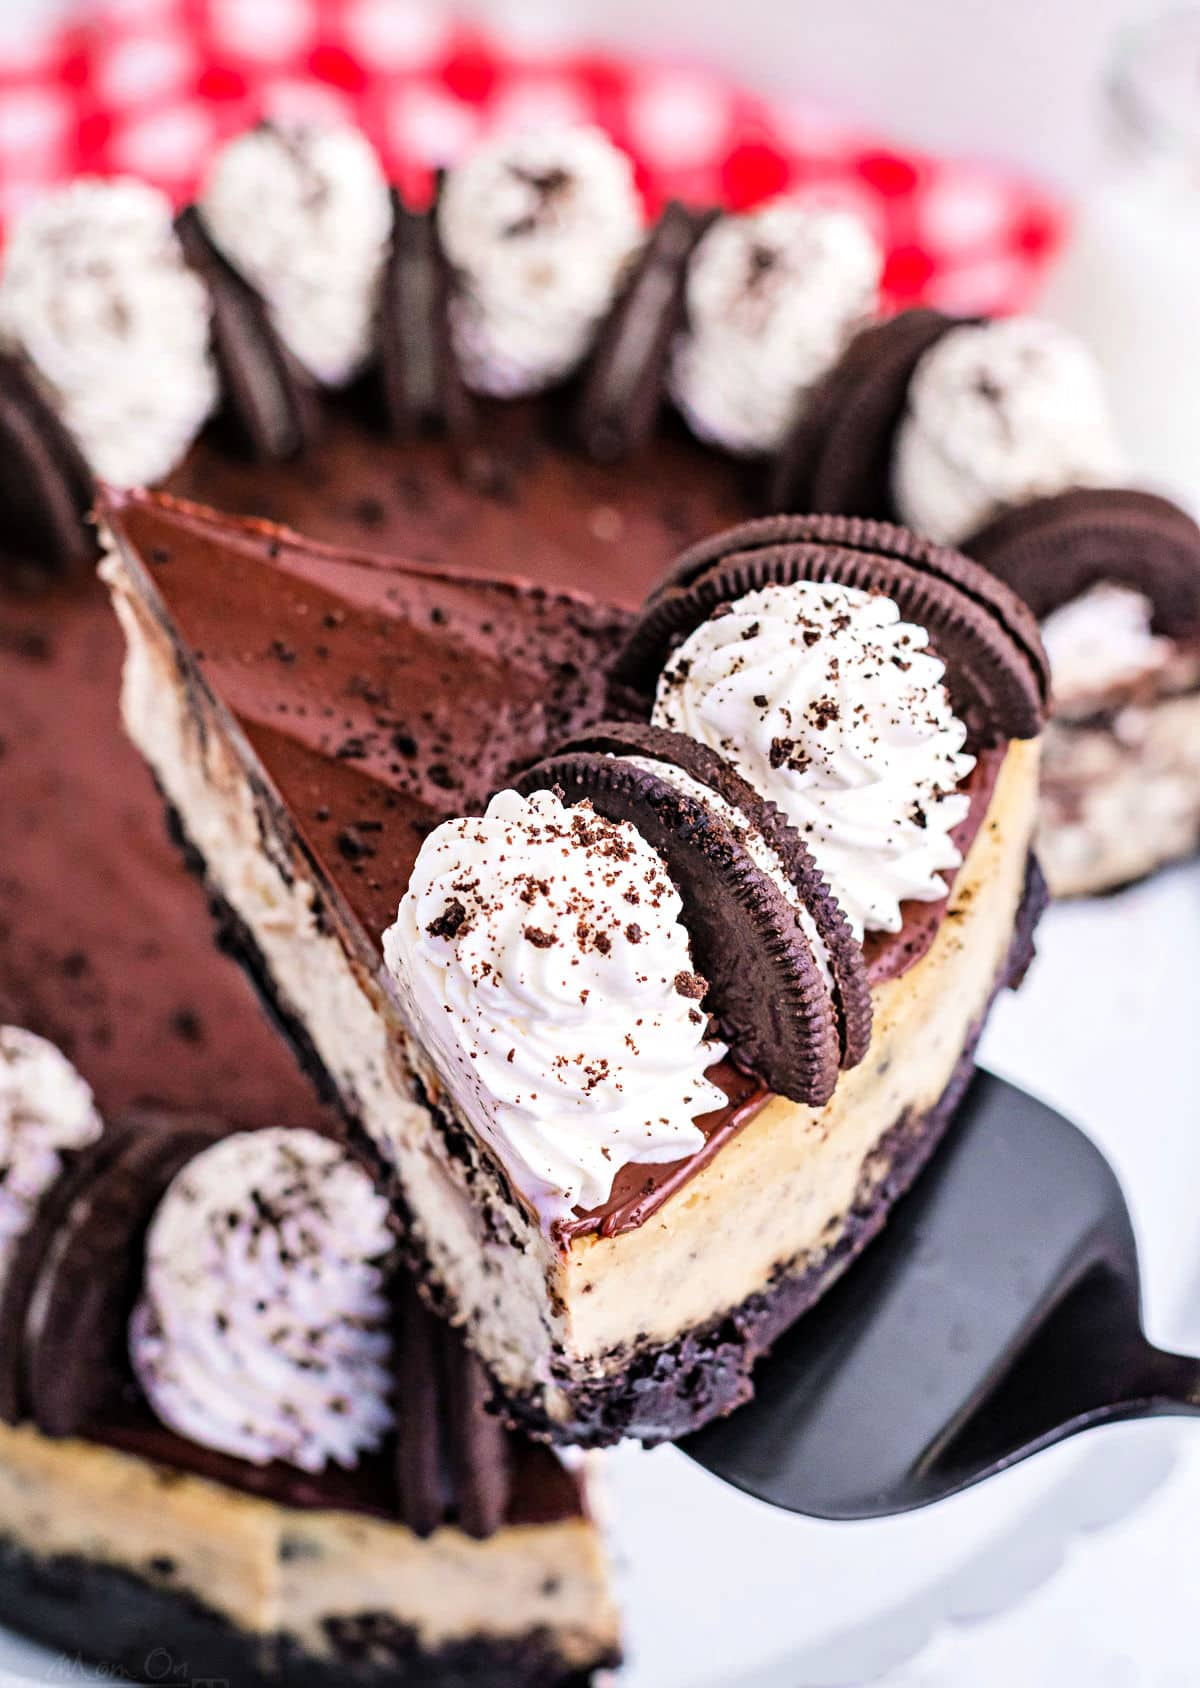 slice of oreo cheesecake being held above cake plate with rest of cheesecake.